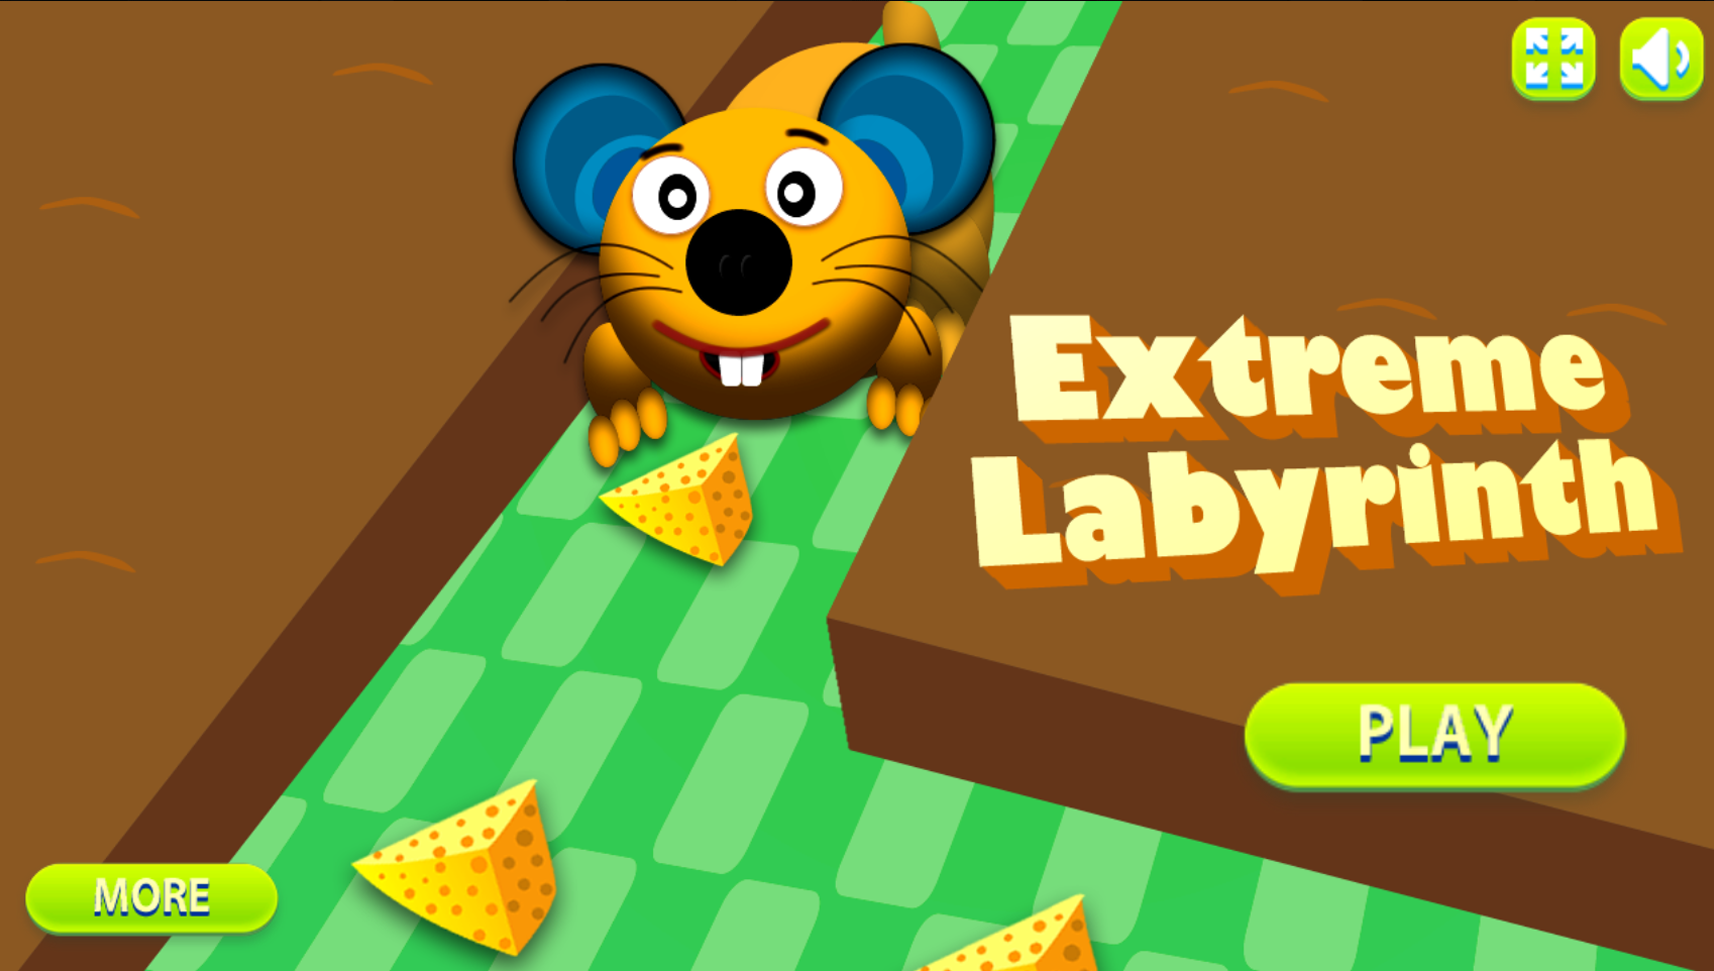 Extreme Labyrinth Game Welcome Screen Screenshot.